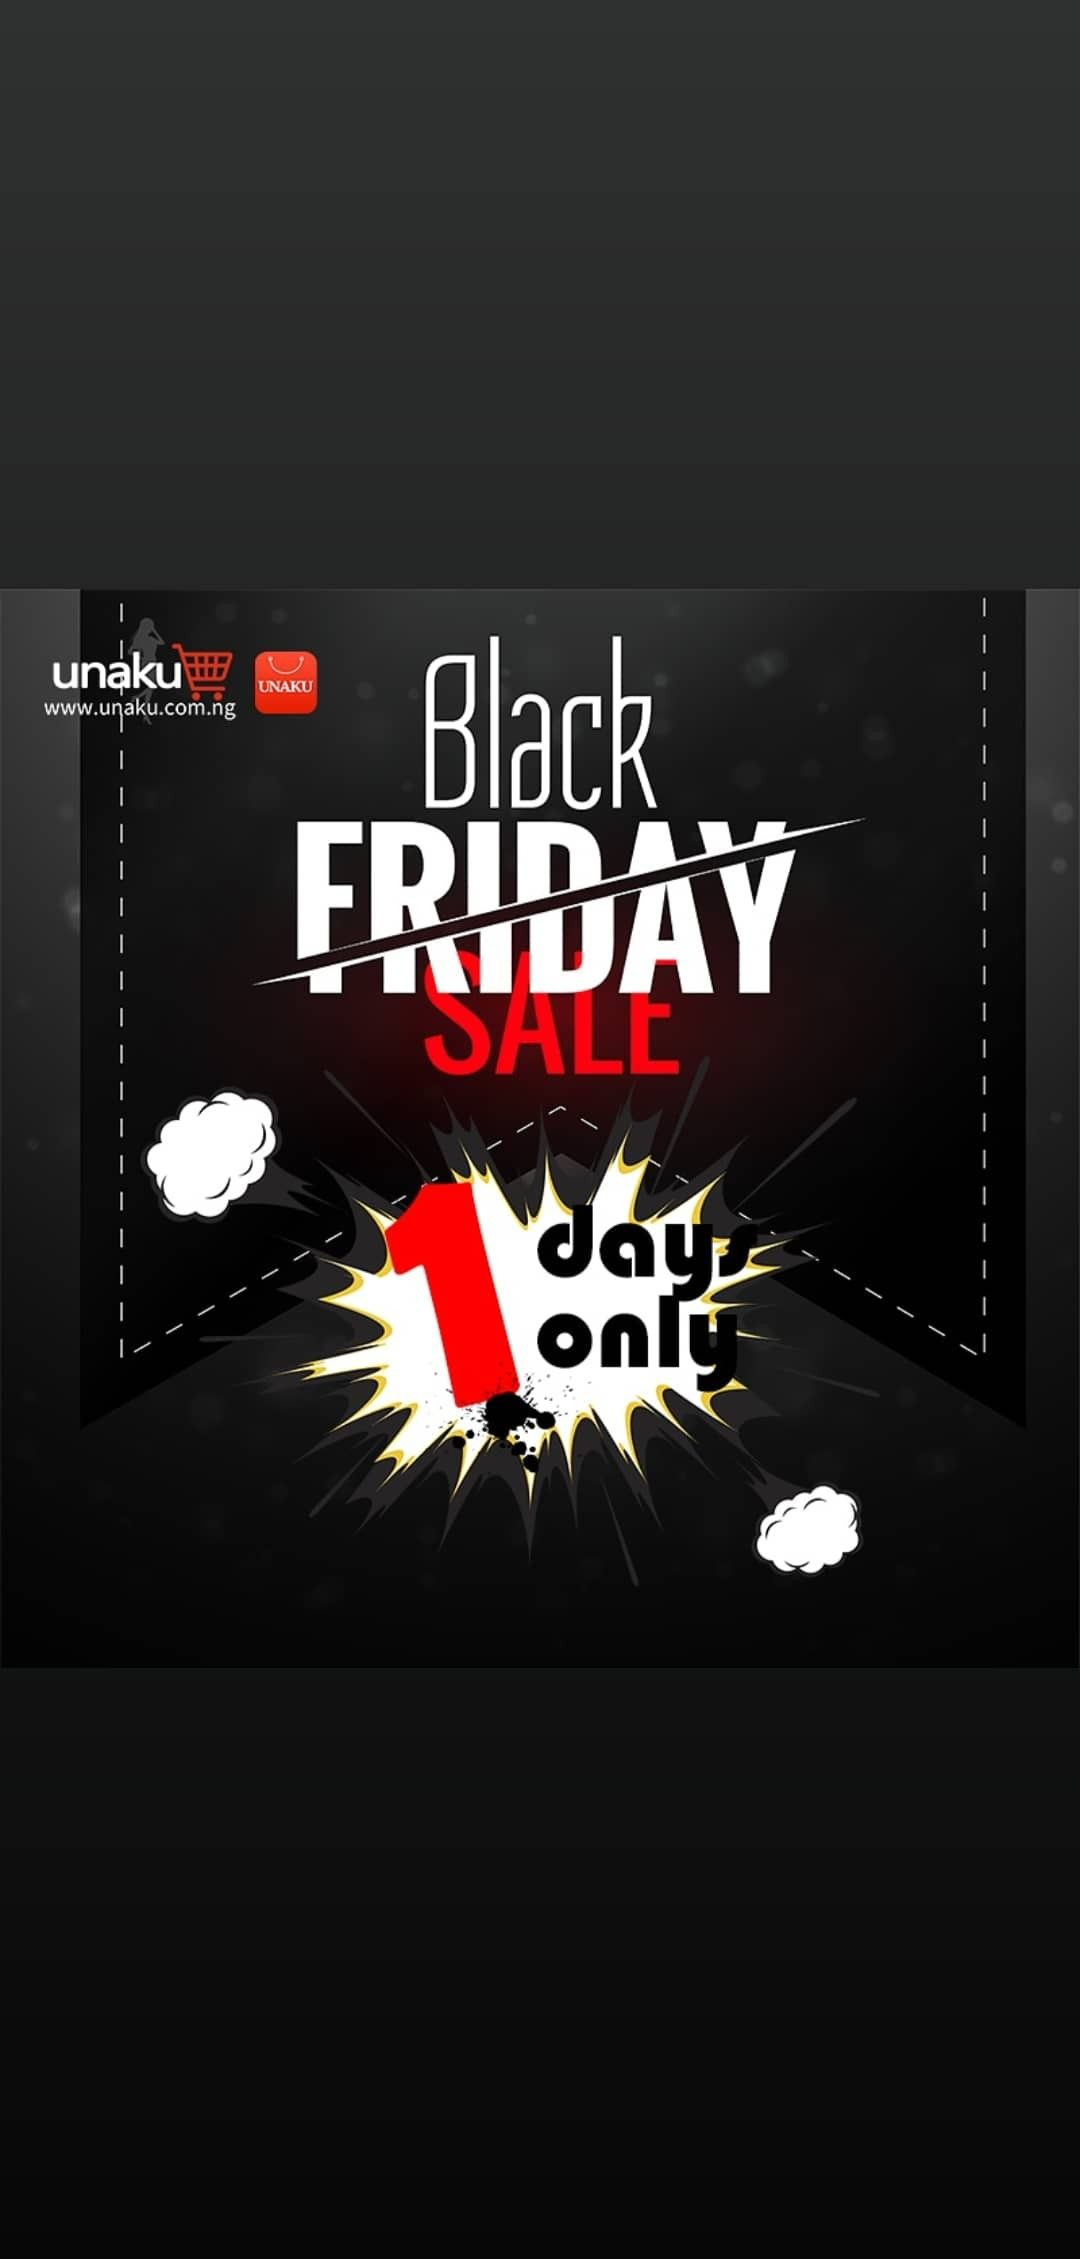 Today Is The Last Day Of Black Friday Don T Miss The Chance For Massive Savings Of Black Friday Ch Black Friday Discount Black Friday Last Day